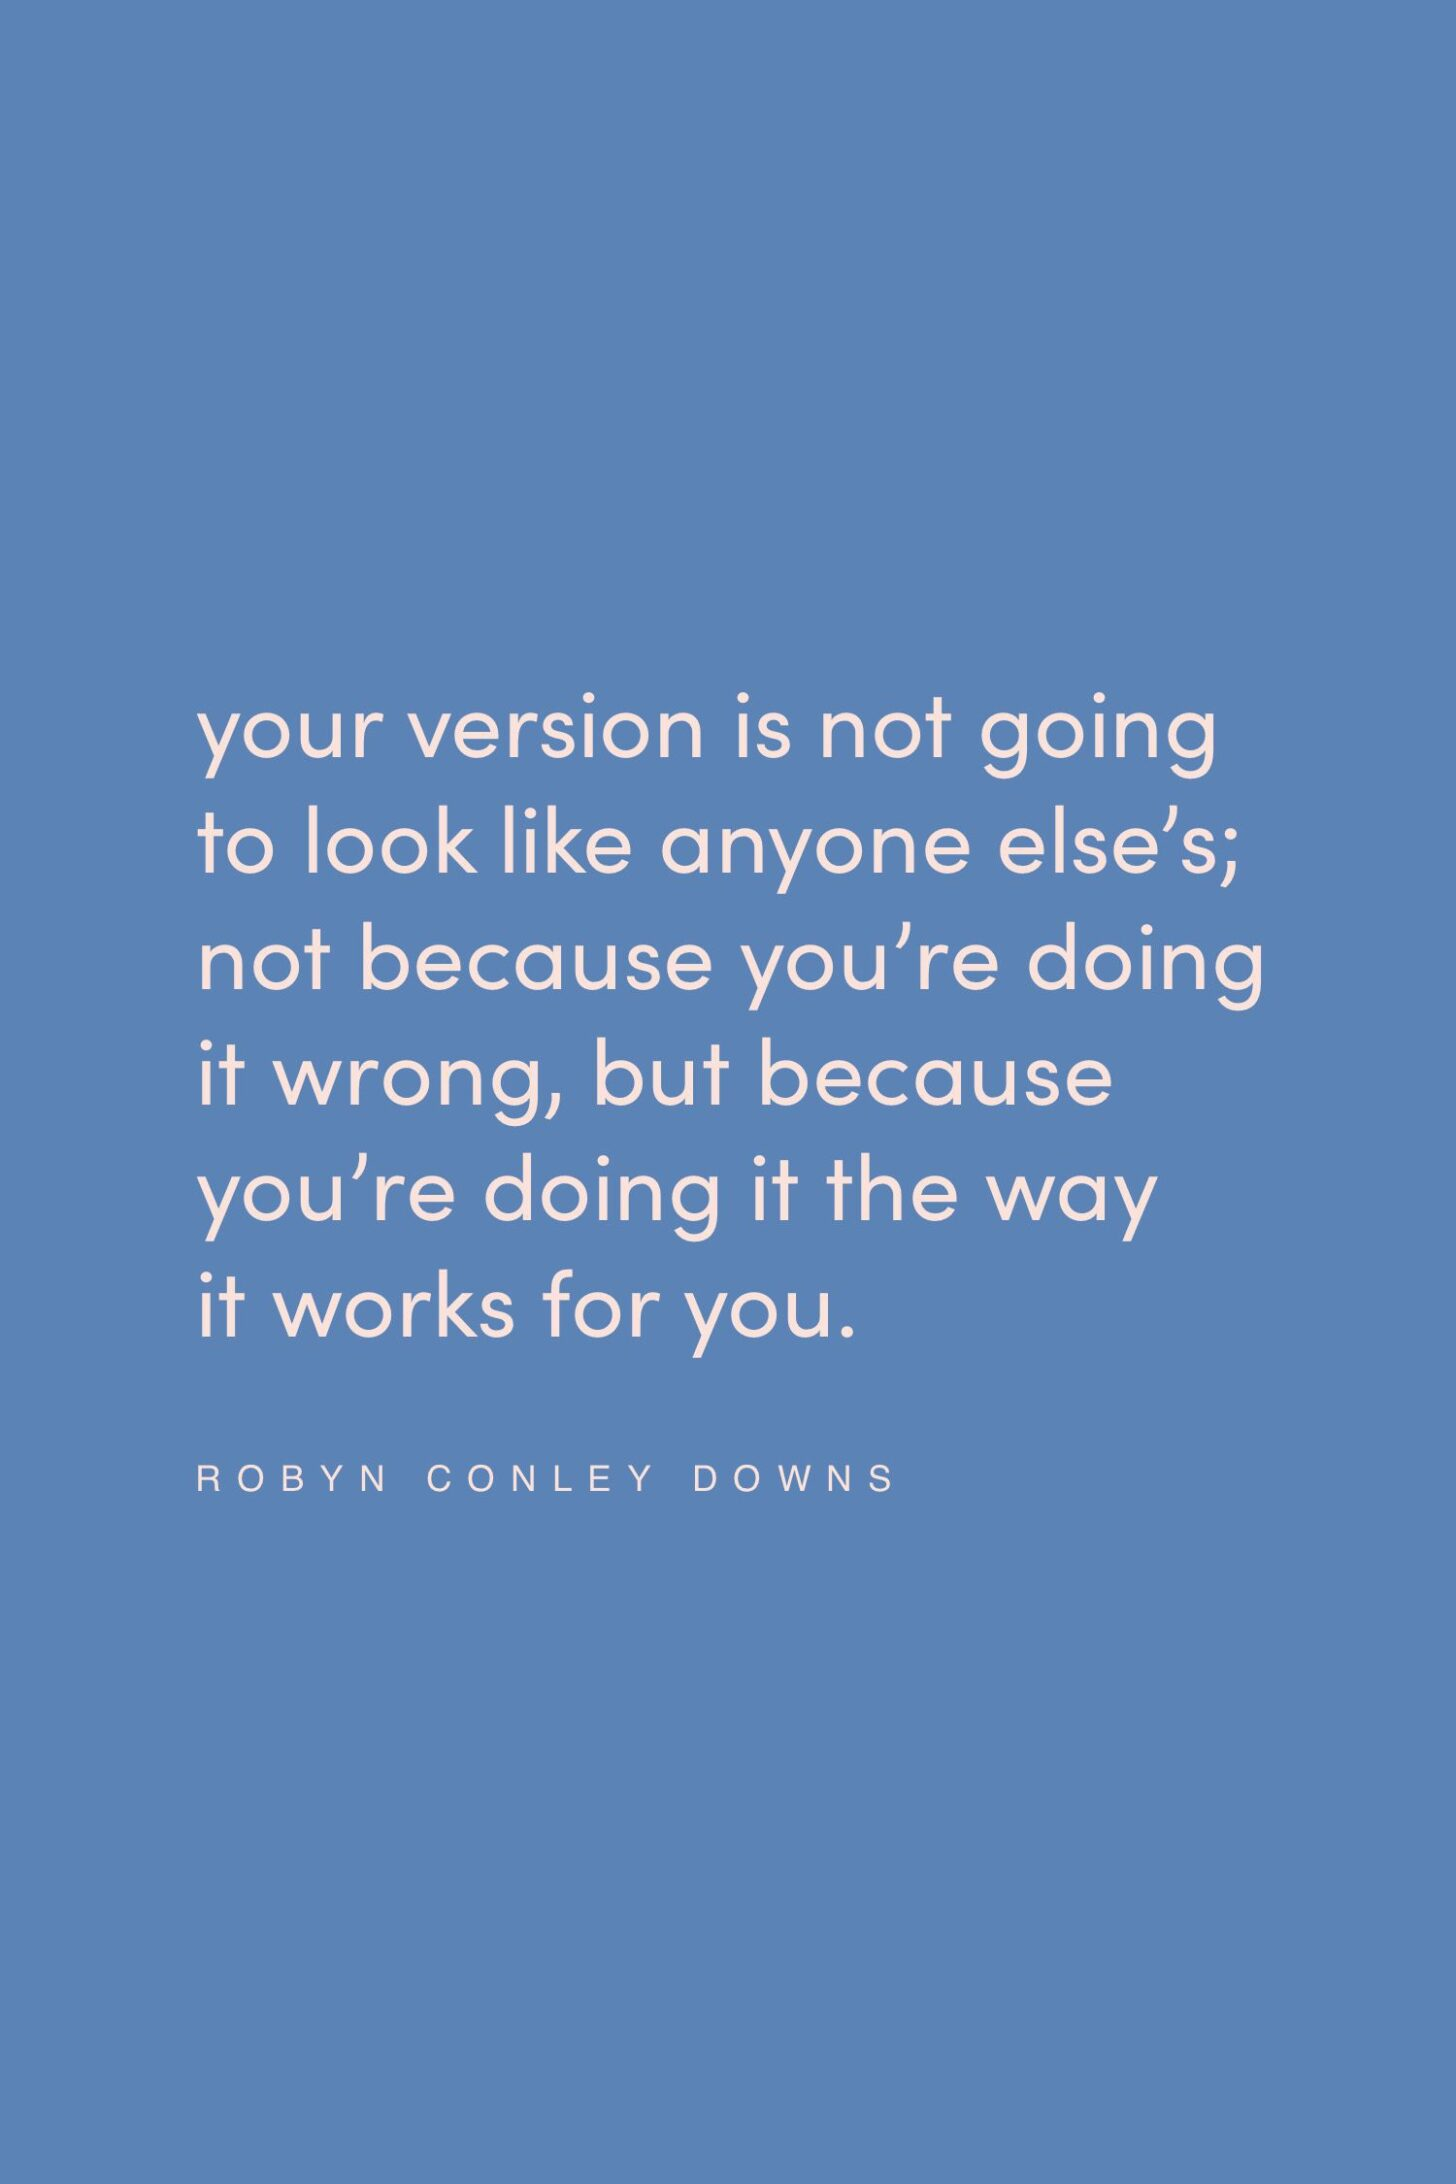 Quote by Robyn Conley Downs